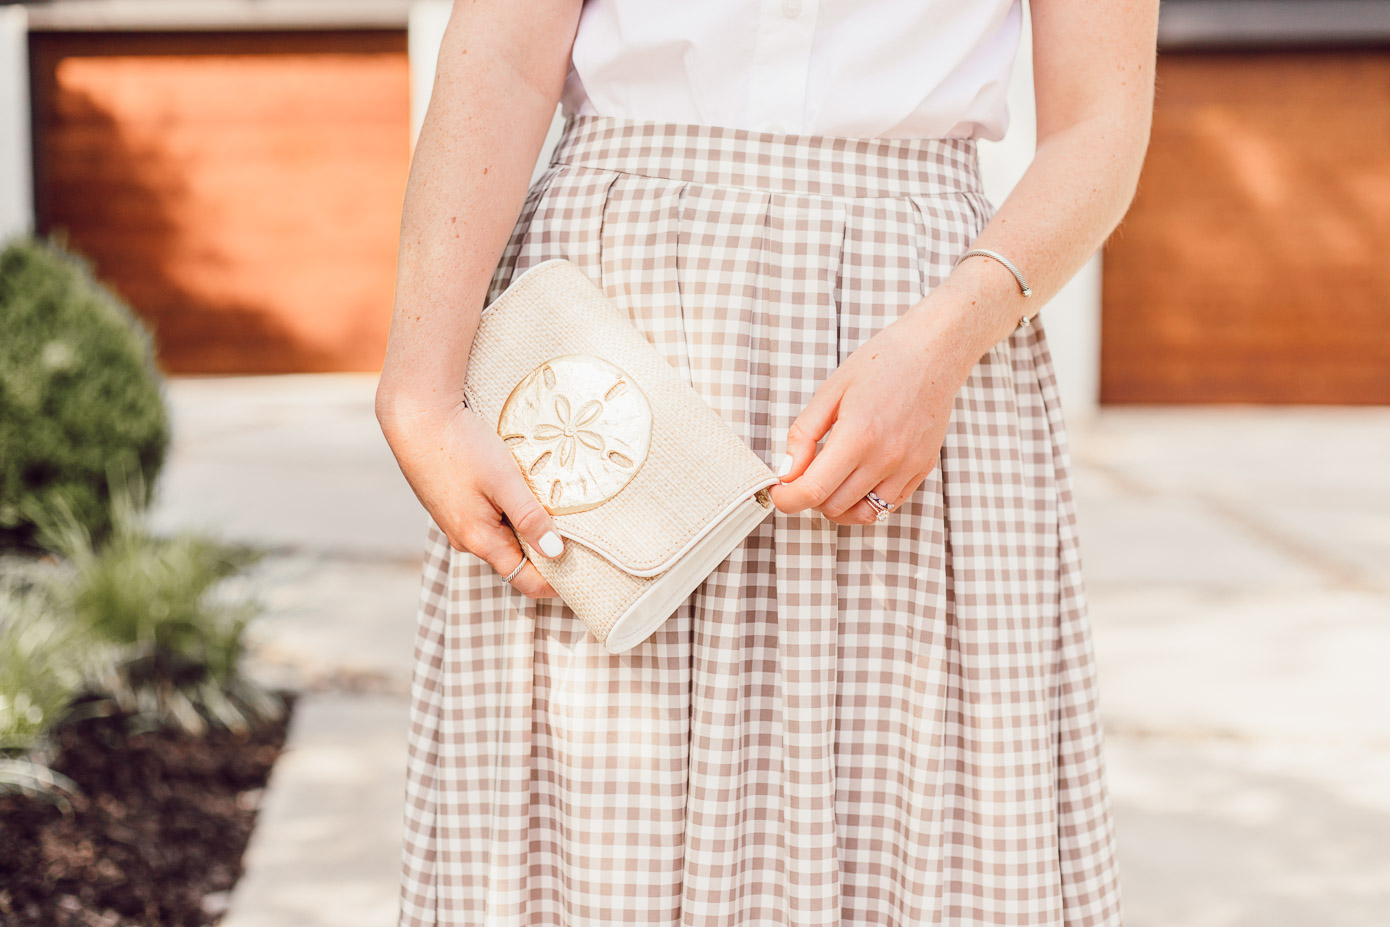 Lisi Lerch Raffia Clutch - A Summer Gingham Maxi Skirt styled by Laura Leigh of Louella Reese #maxiskirt #gingham #southernstyle